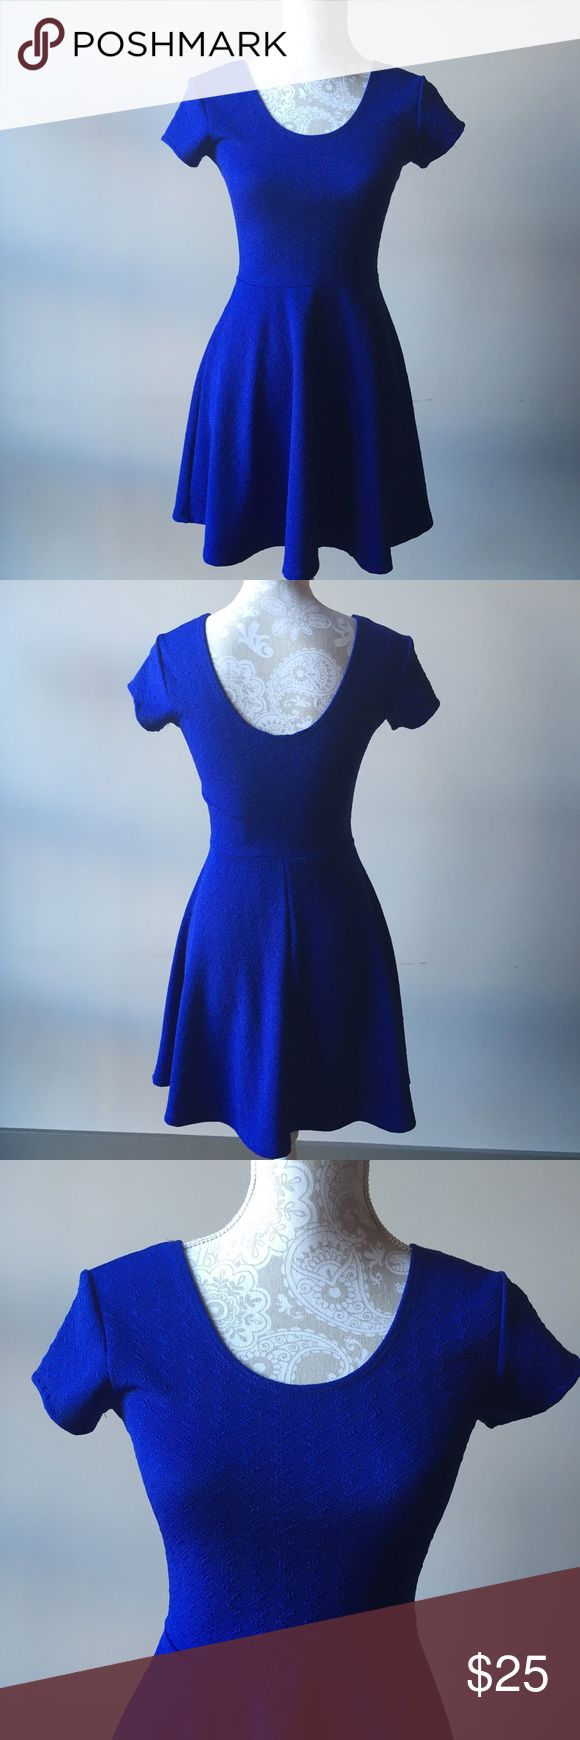 Royal blue skater dress Cute and flirty textured skater dress. Worn once for a party and still like new. Planet Gold Dresses